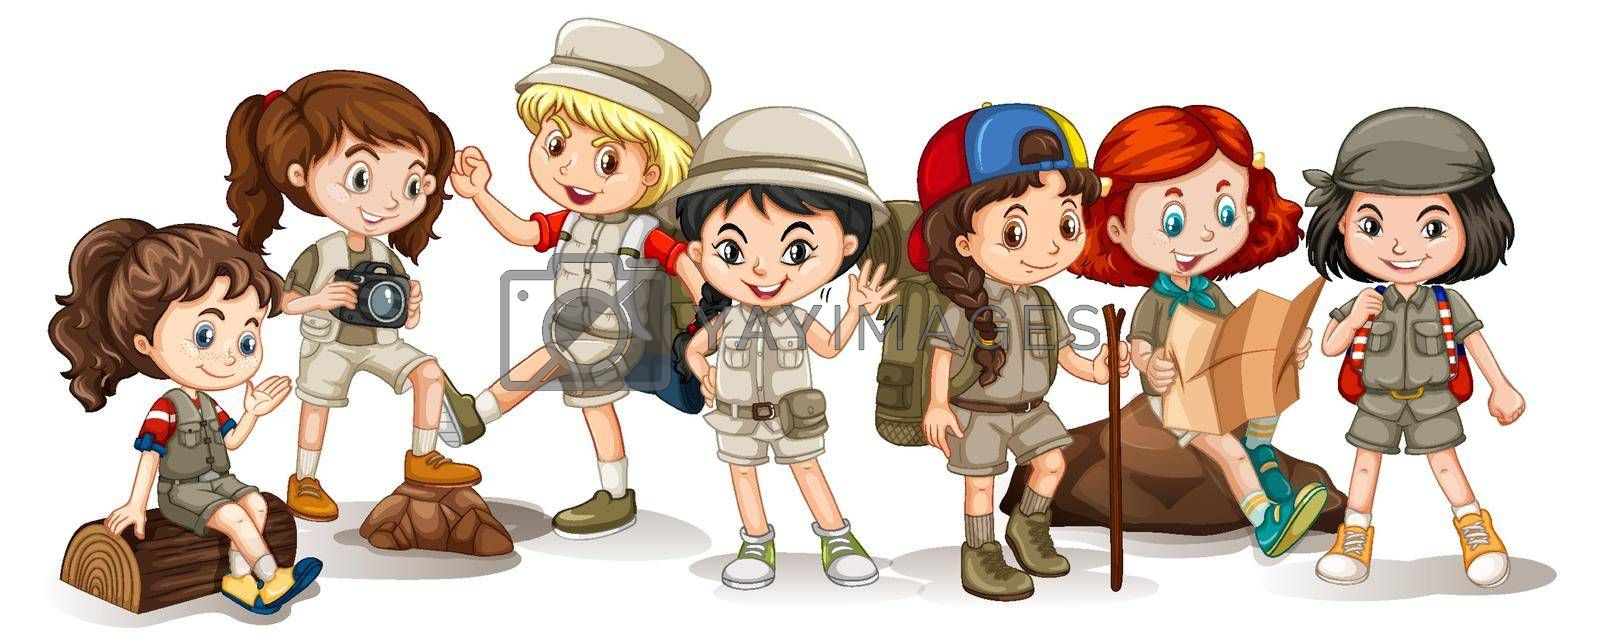 Happy children in different actions illustration